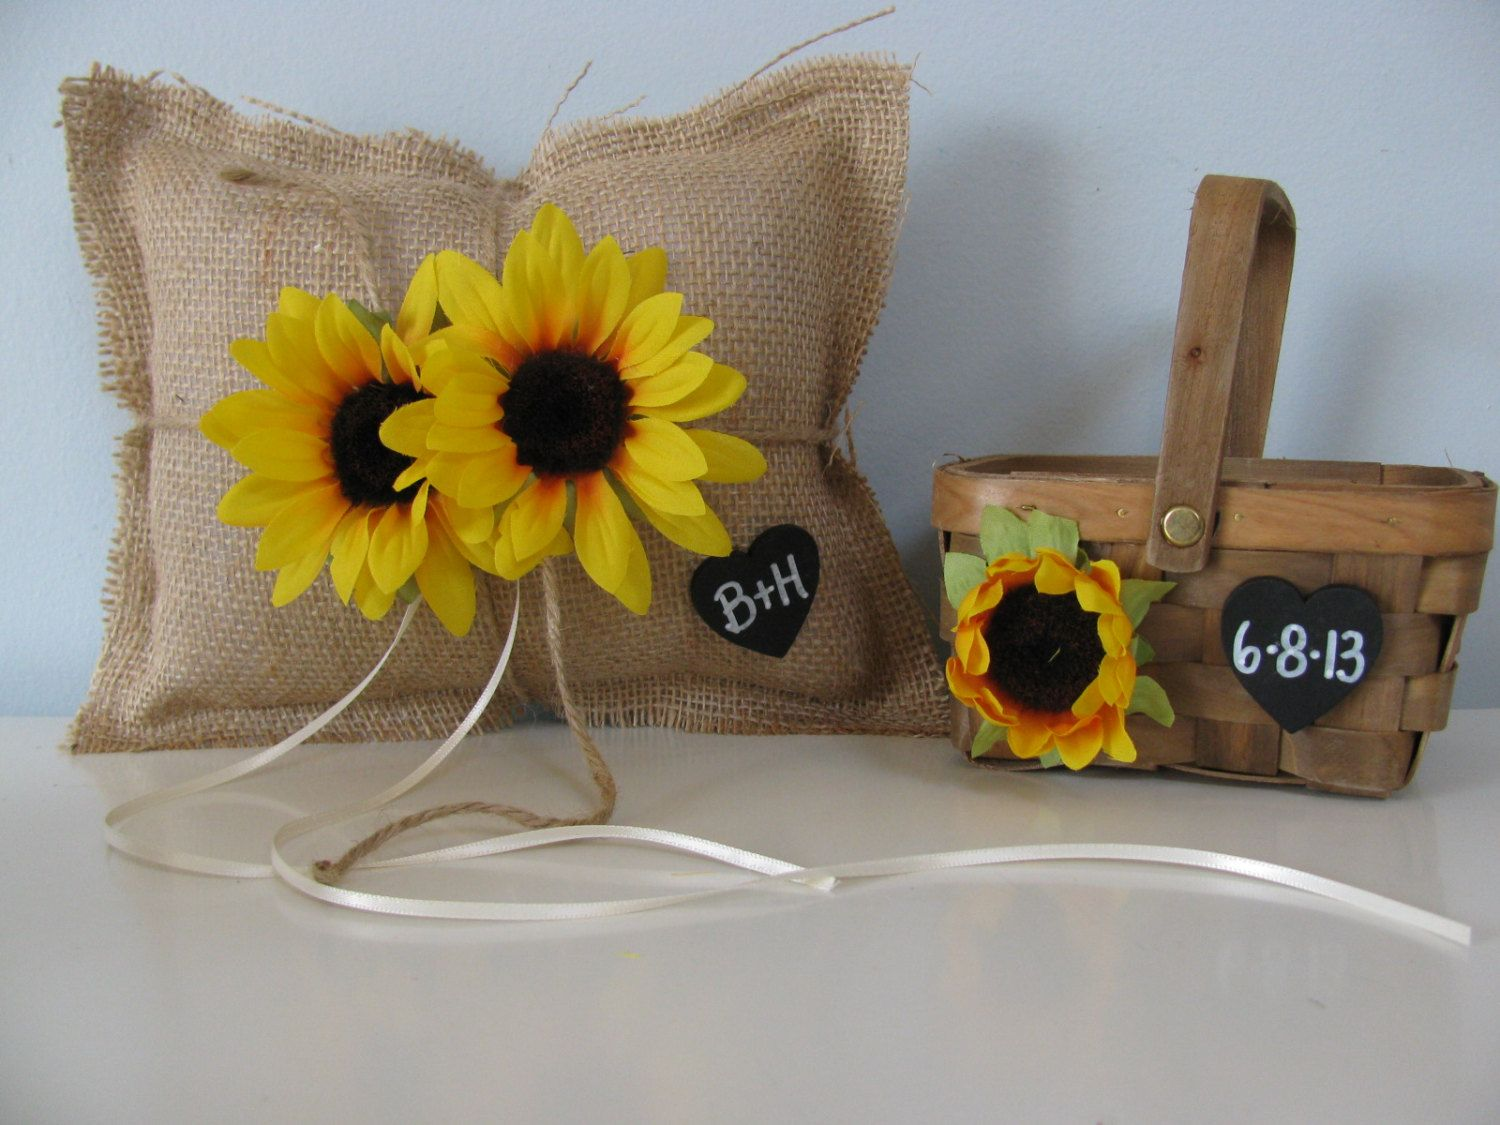 Sunflower ring pillow and flower girl basket available via etsy rustic burlap wedding ring bearer pillow and flower girl basket set sunflowers personalized chalkboard tag you customize flower colors izmirmasajfo Images